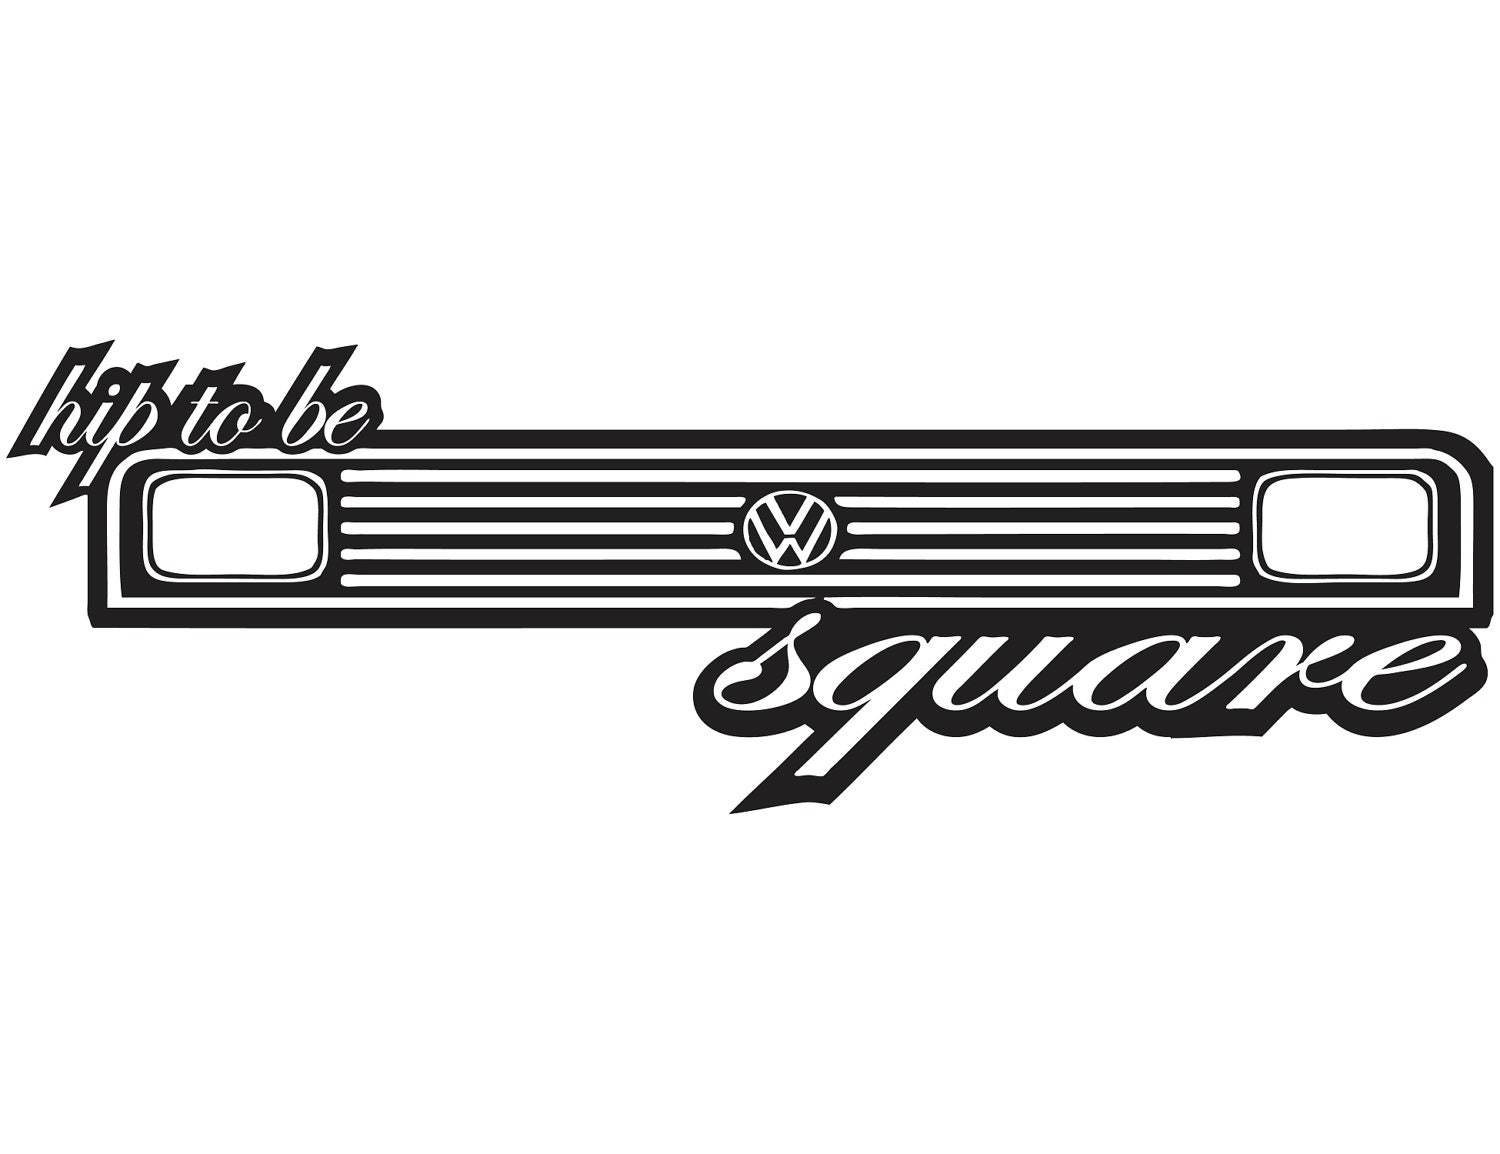 Vw Sticker Hip To Be Square